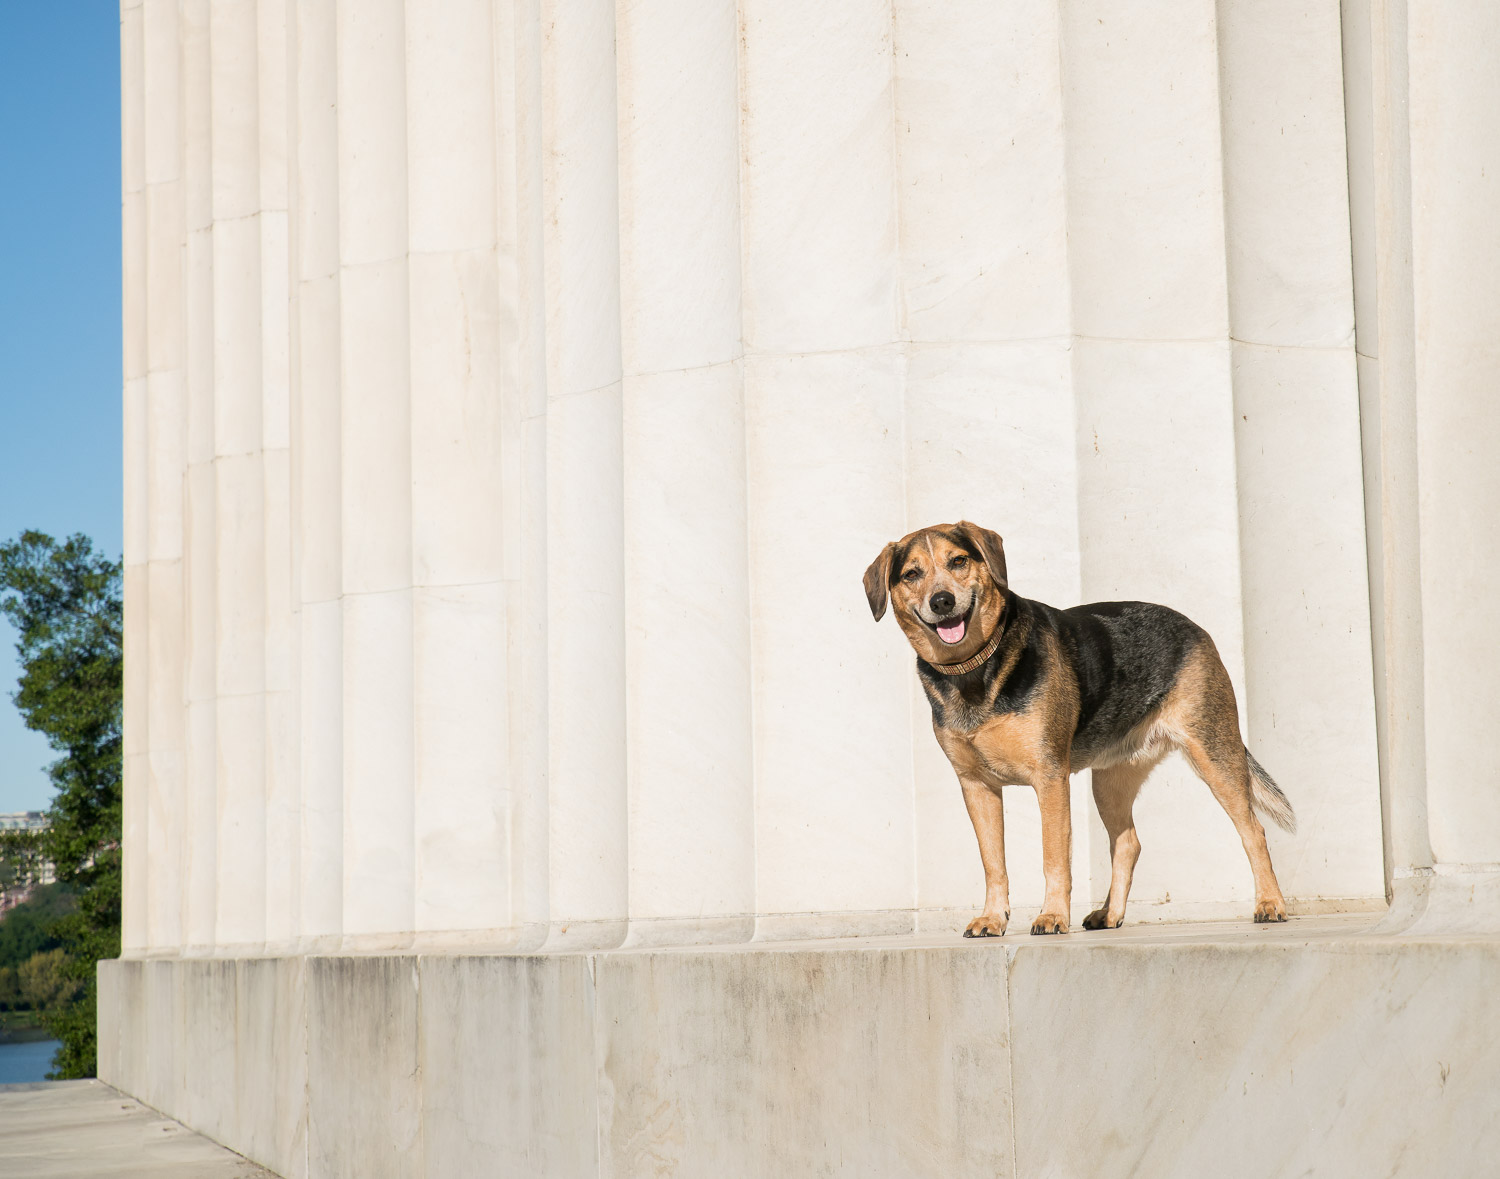 Just look at that smile from a true DC dog... this was taken from the side of the memorial